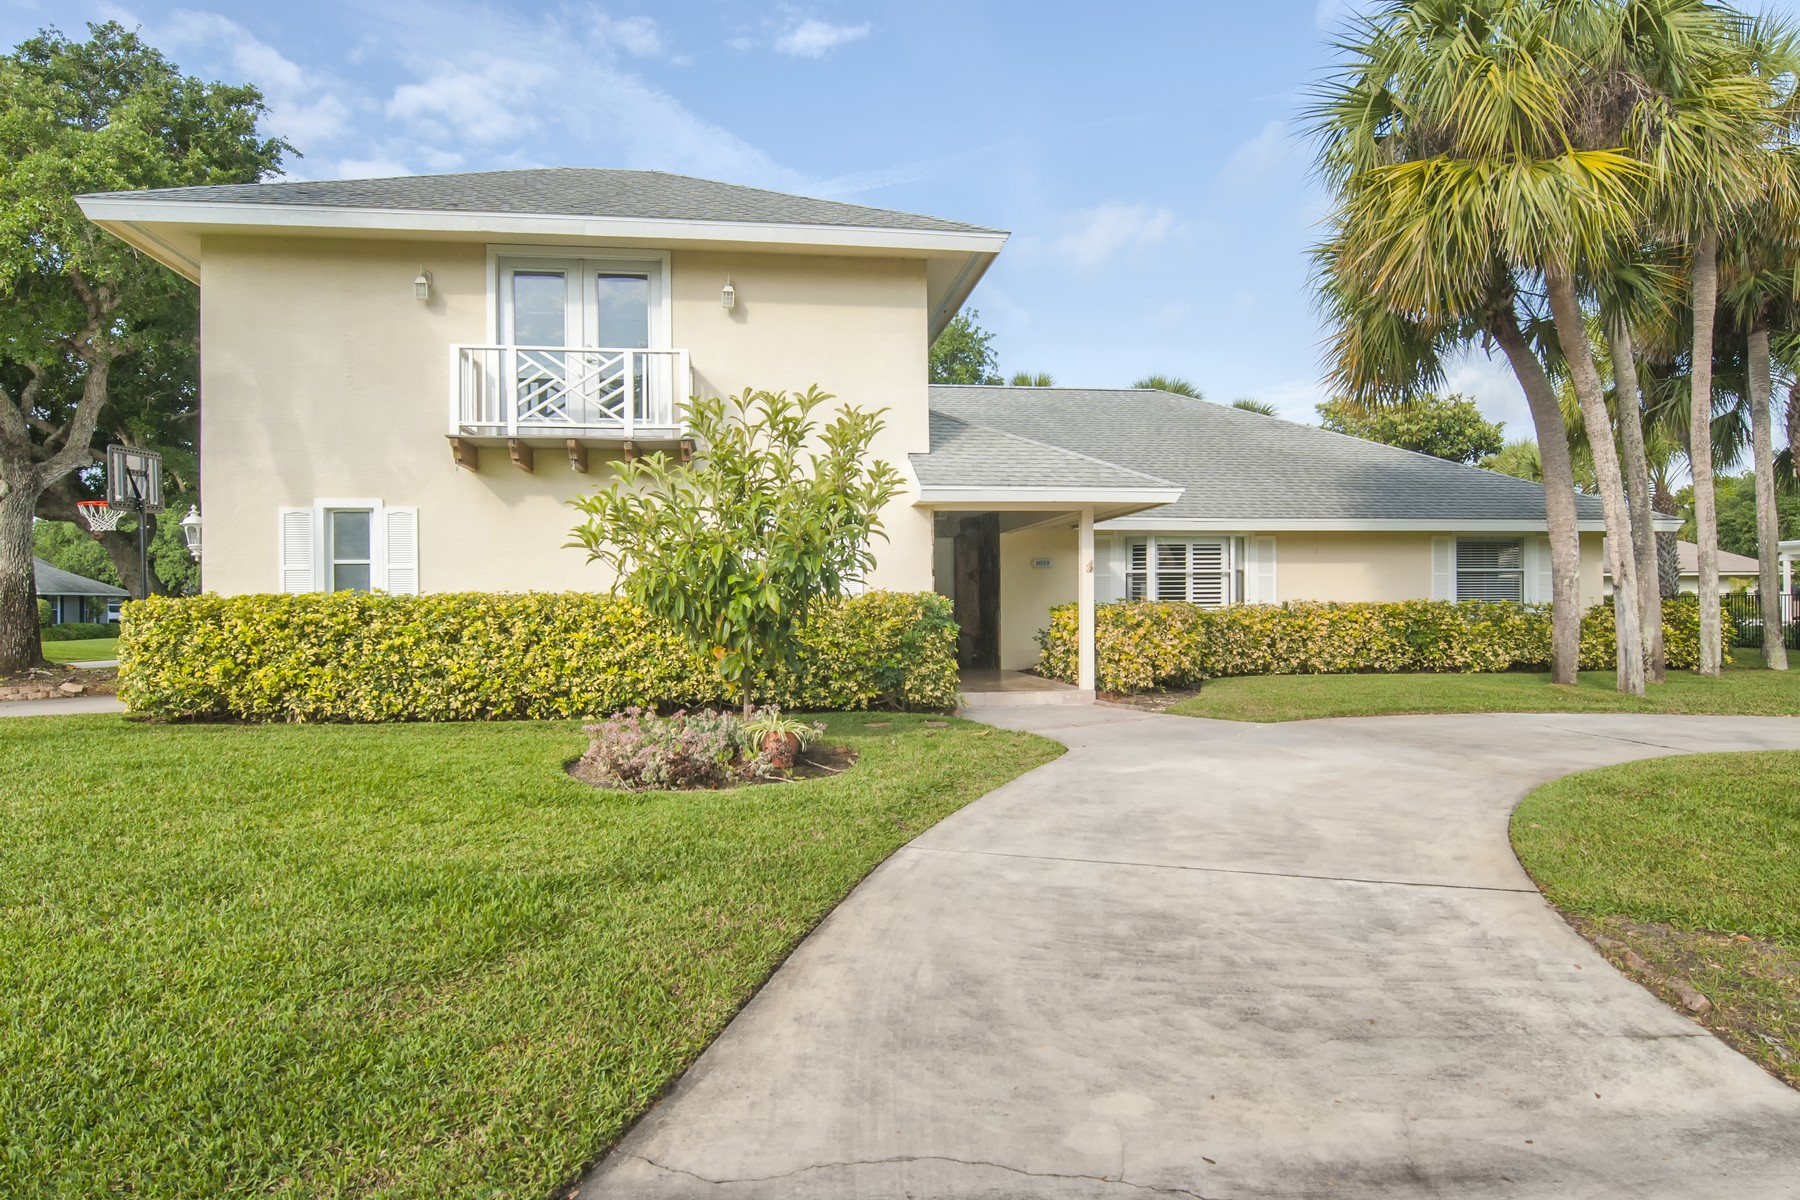 Single Family Home for Sale at Island Living At It's Best! 1013 Poitras Dr Vero Beach, Florida 32963 United States